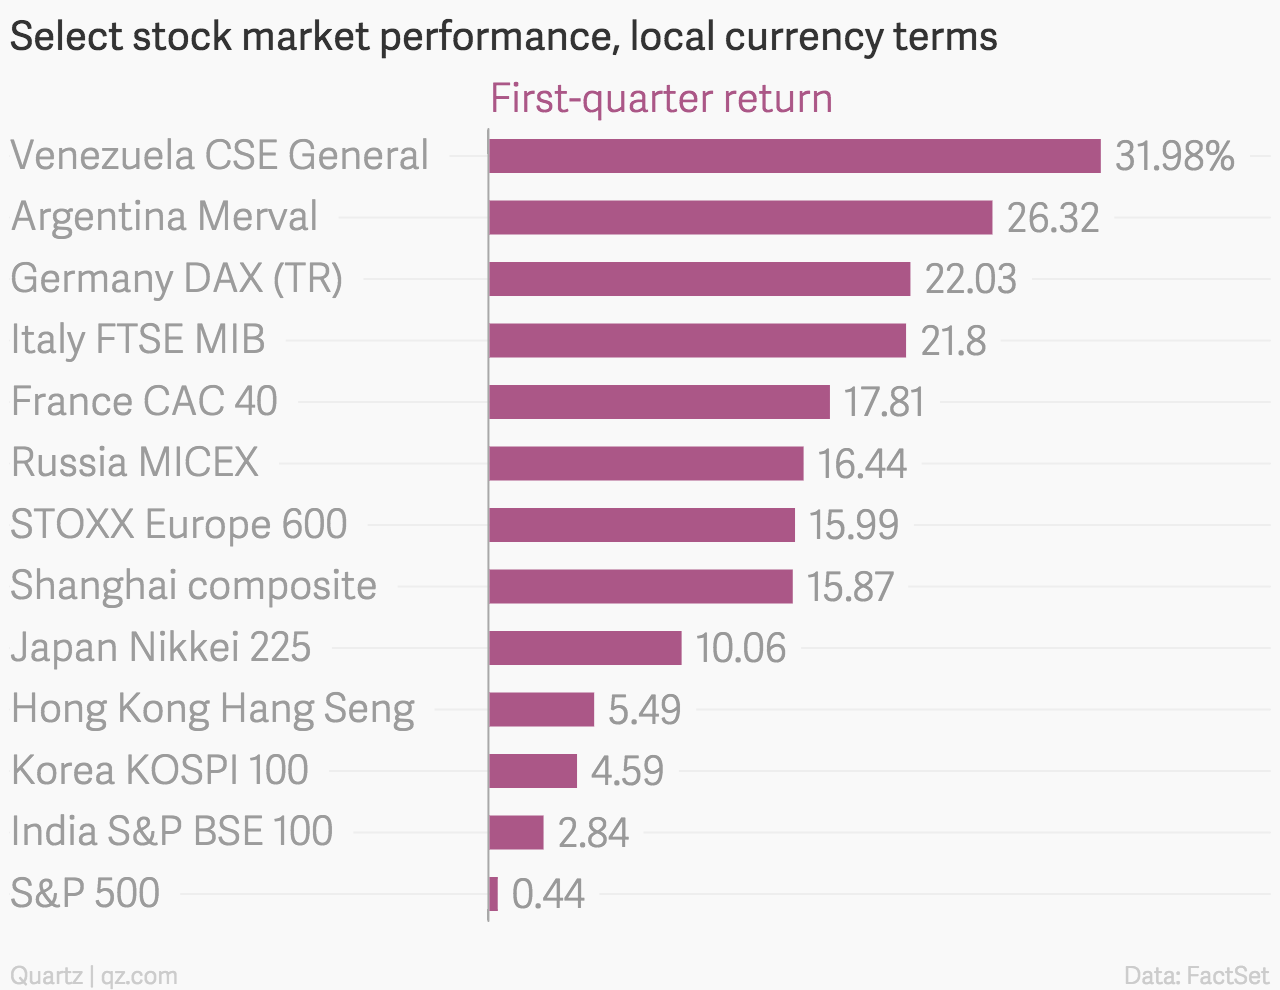 Select-stock-market-performance-local-currency-terms-First-quarter-return_chartbuilder